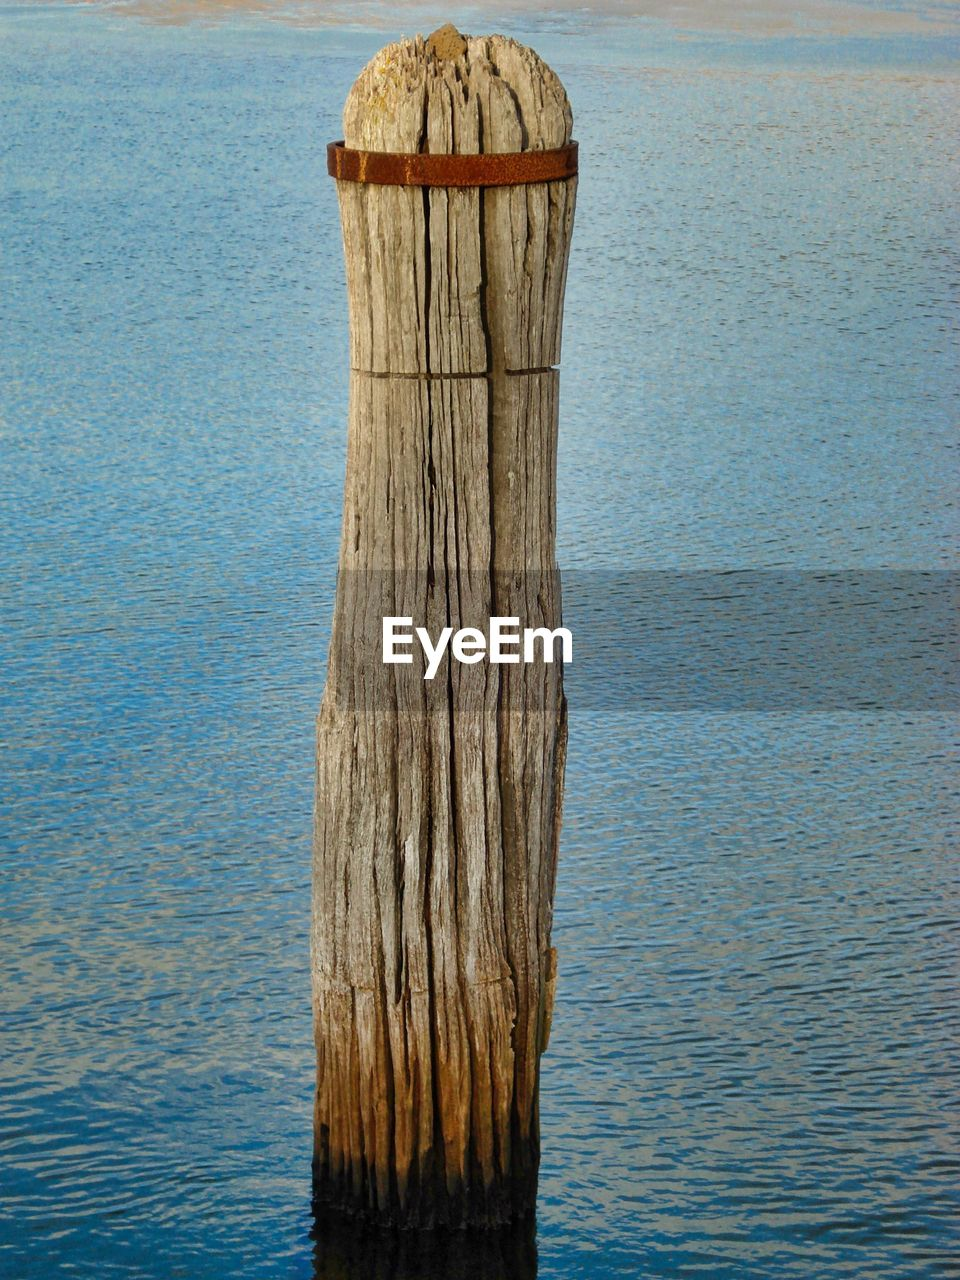 water, wood - material, day, post, no people, wooden post, nature, tranquility, outdoors, sea, tree, close-up, land, blue, tranquil scene, plant, beauty in nature, scenics - nature, beach